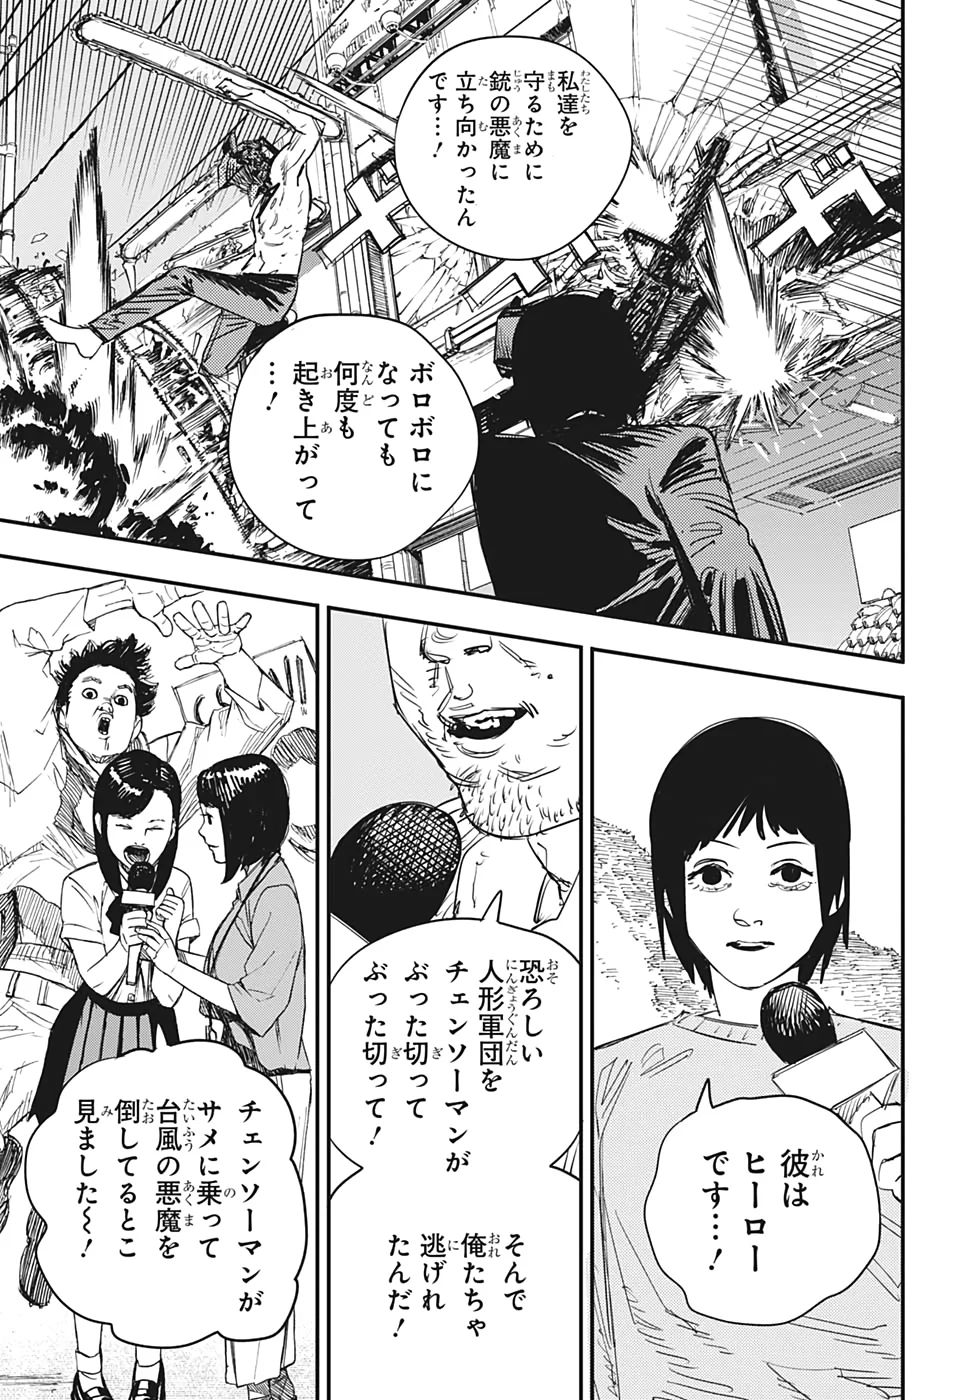 Manga Raw Chainsaw-man Chapter 89